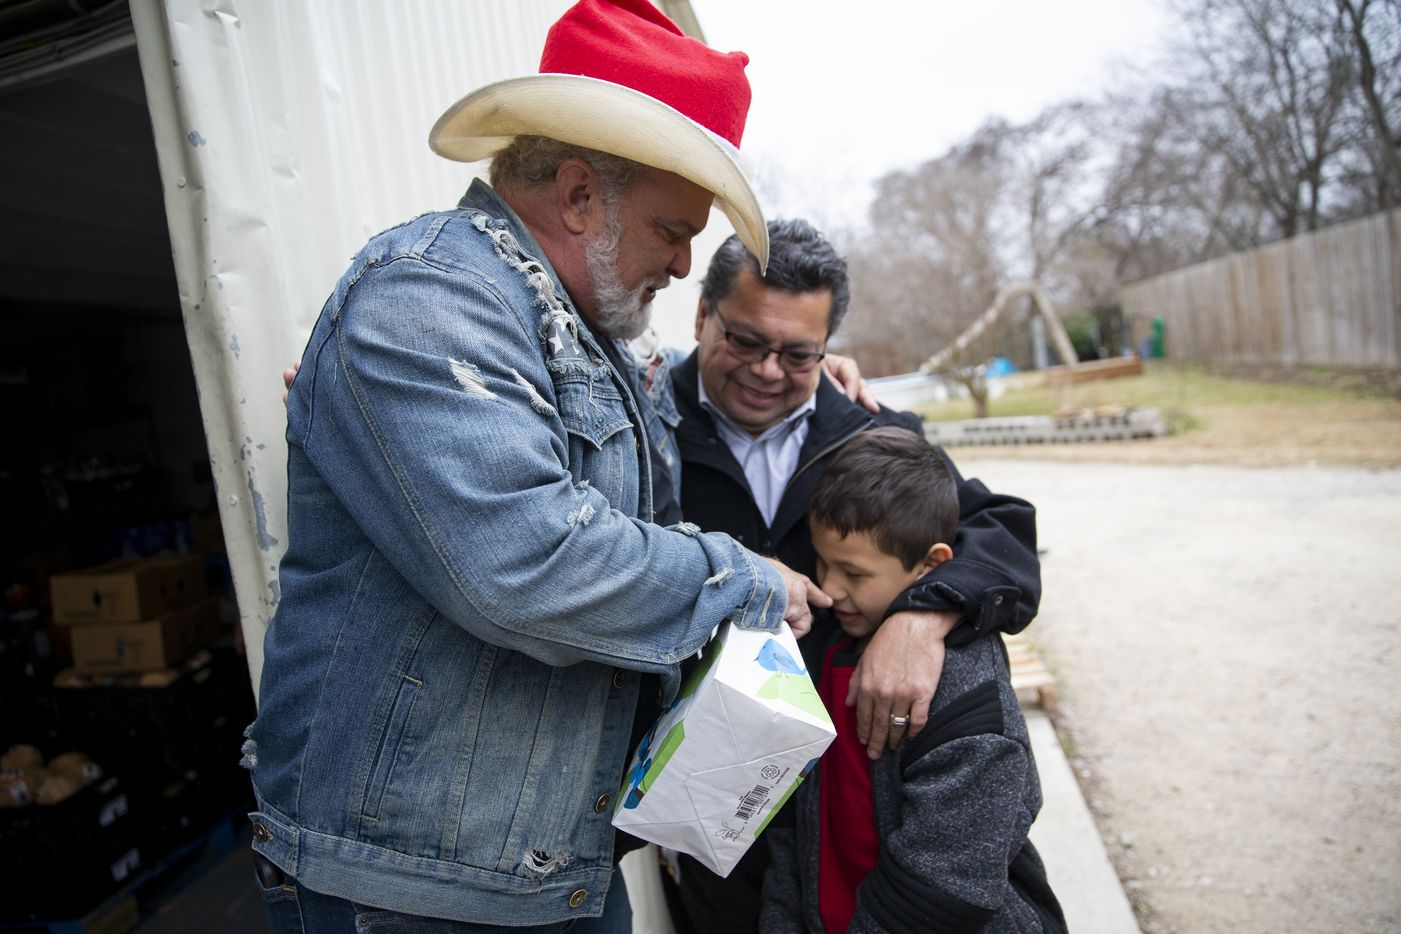 Leon Birdd (left) teased Marcelino Romero, 8, as he and Edgar Hernandez with Templo Cristiano Agape came by to load up from the Birdds' food pantry in Mesquite on Dec. 20, 2019. Local faith leaders used the donated food to help feed their communities.